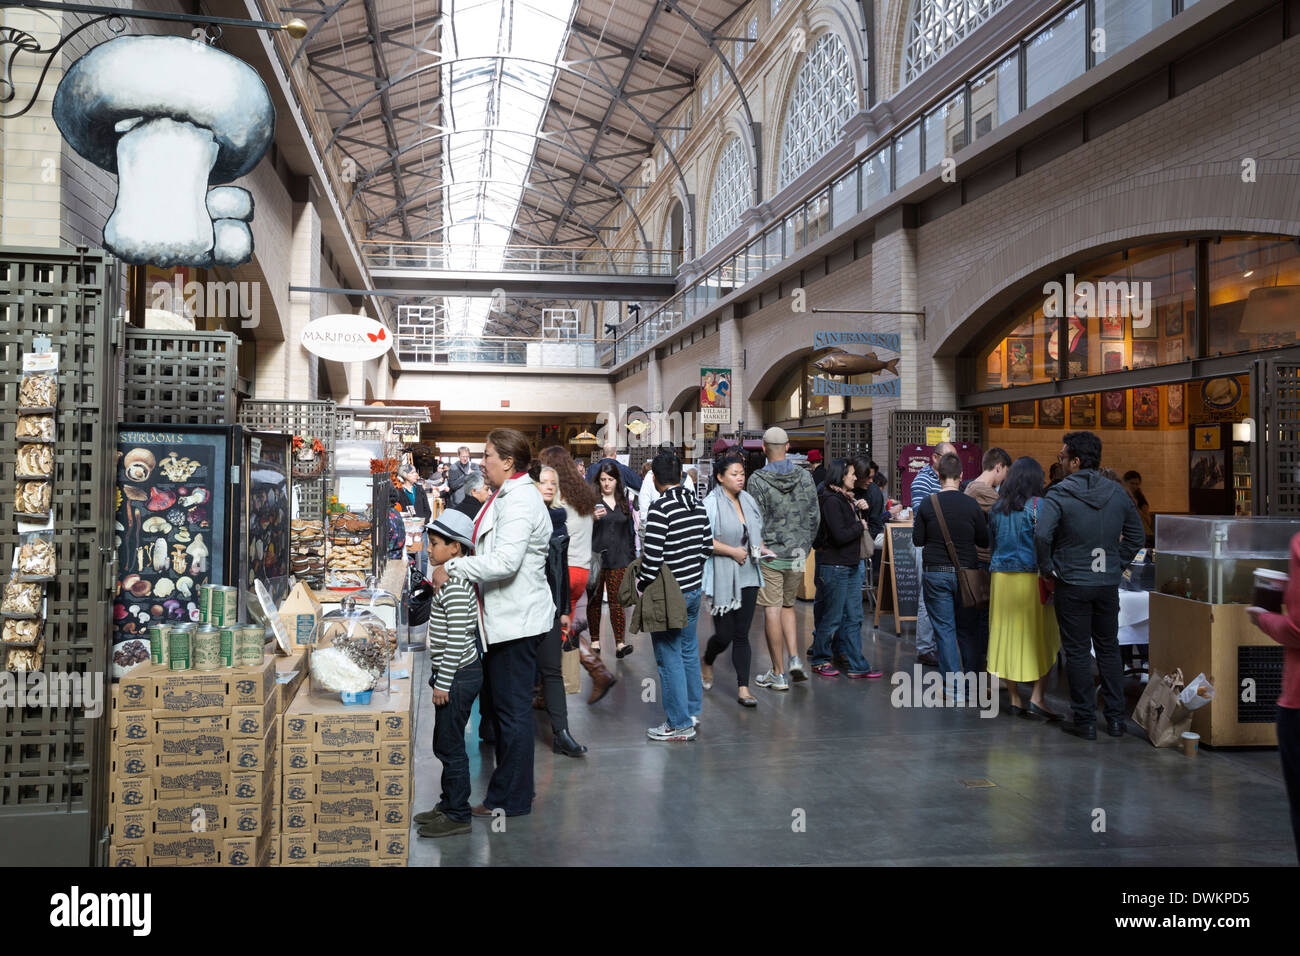 Ferry Building Marketplace, San Francisco, California, United States of America, North America - Stock Image